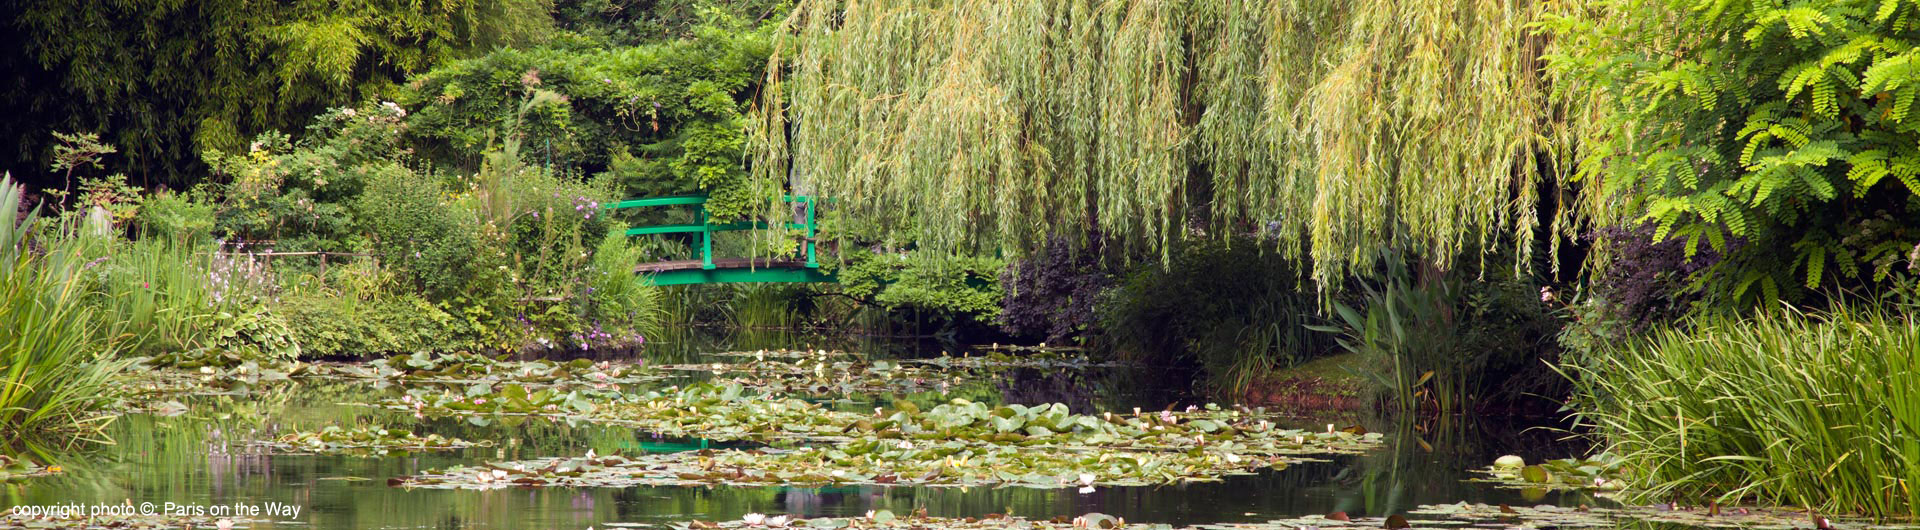 Guided Tour of Giverny